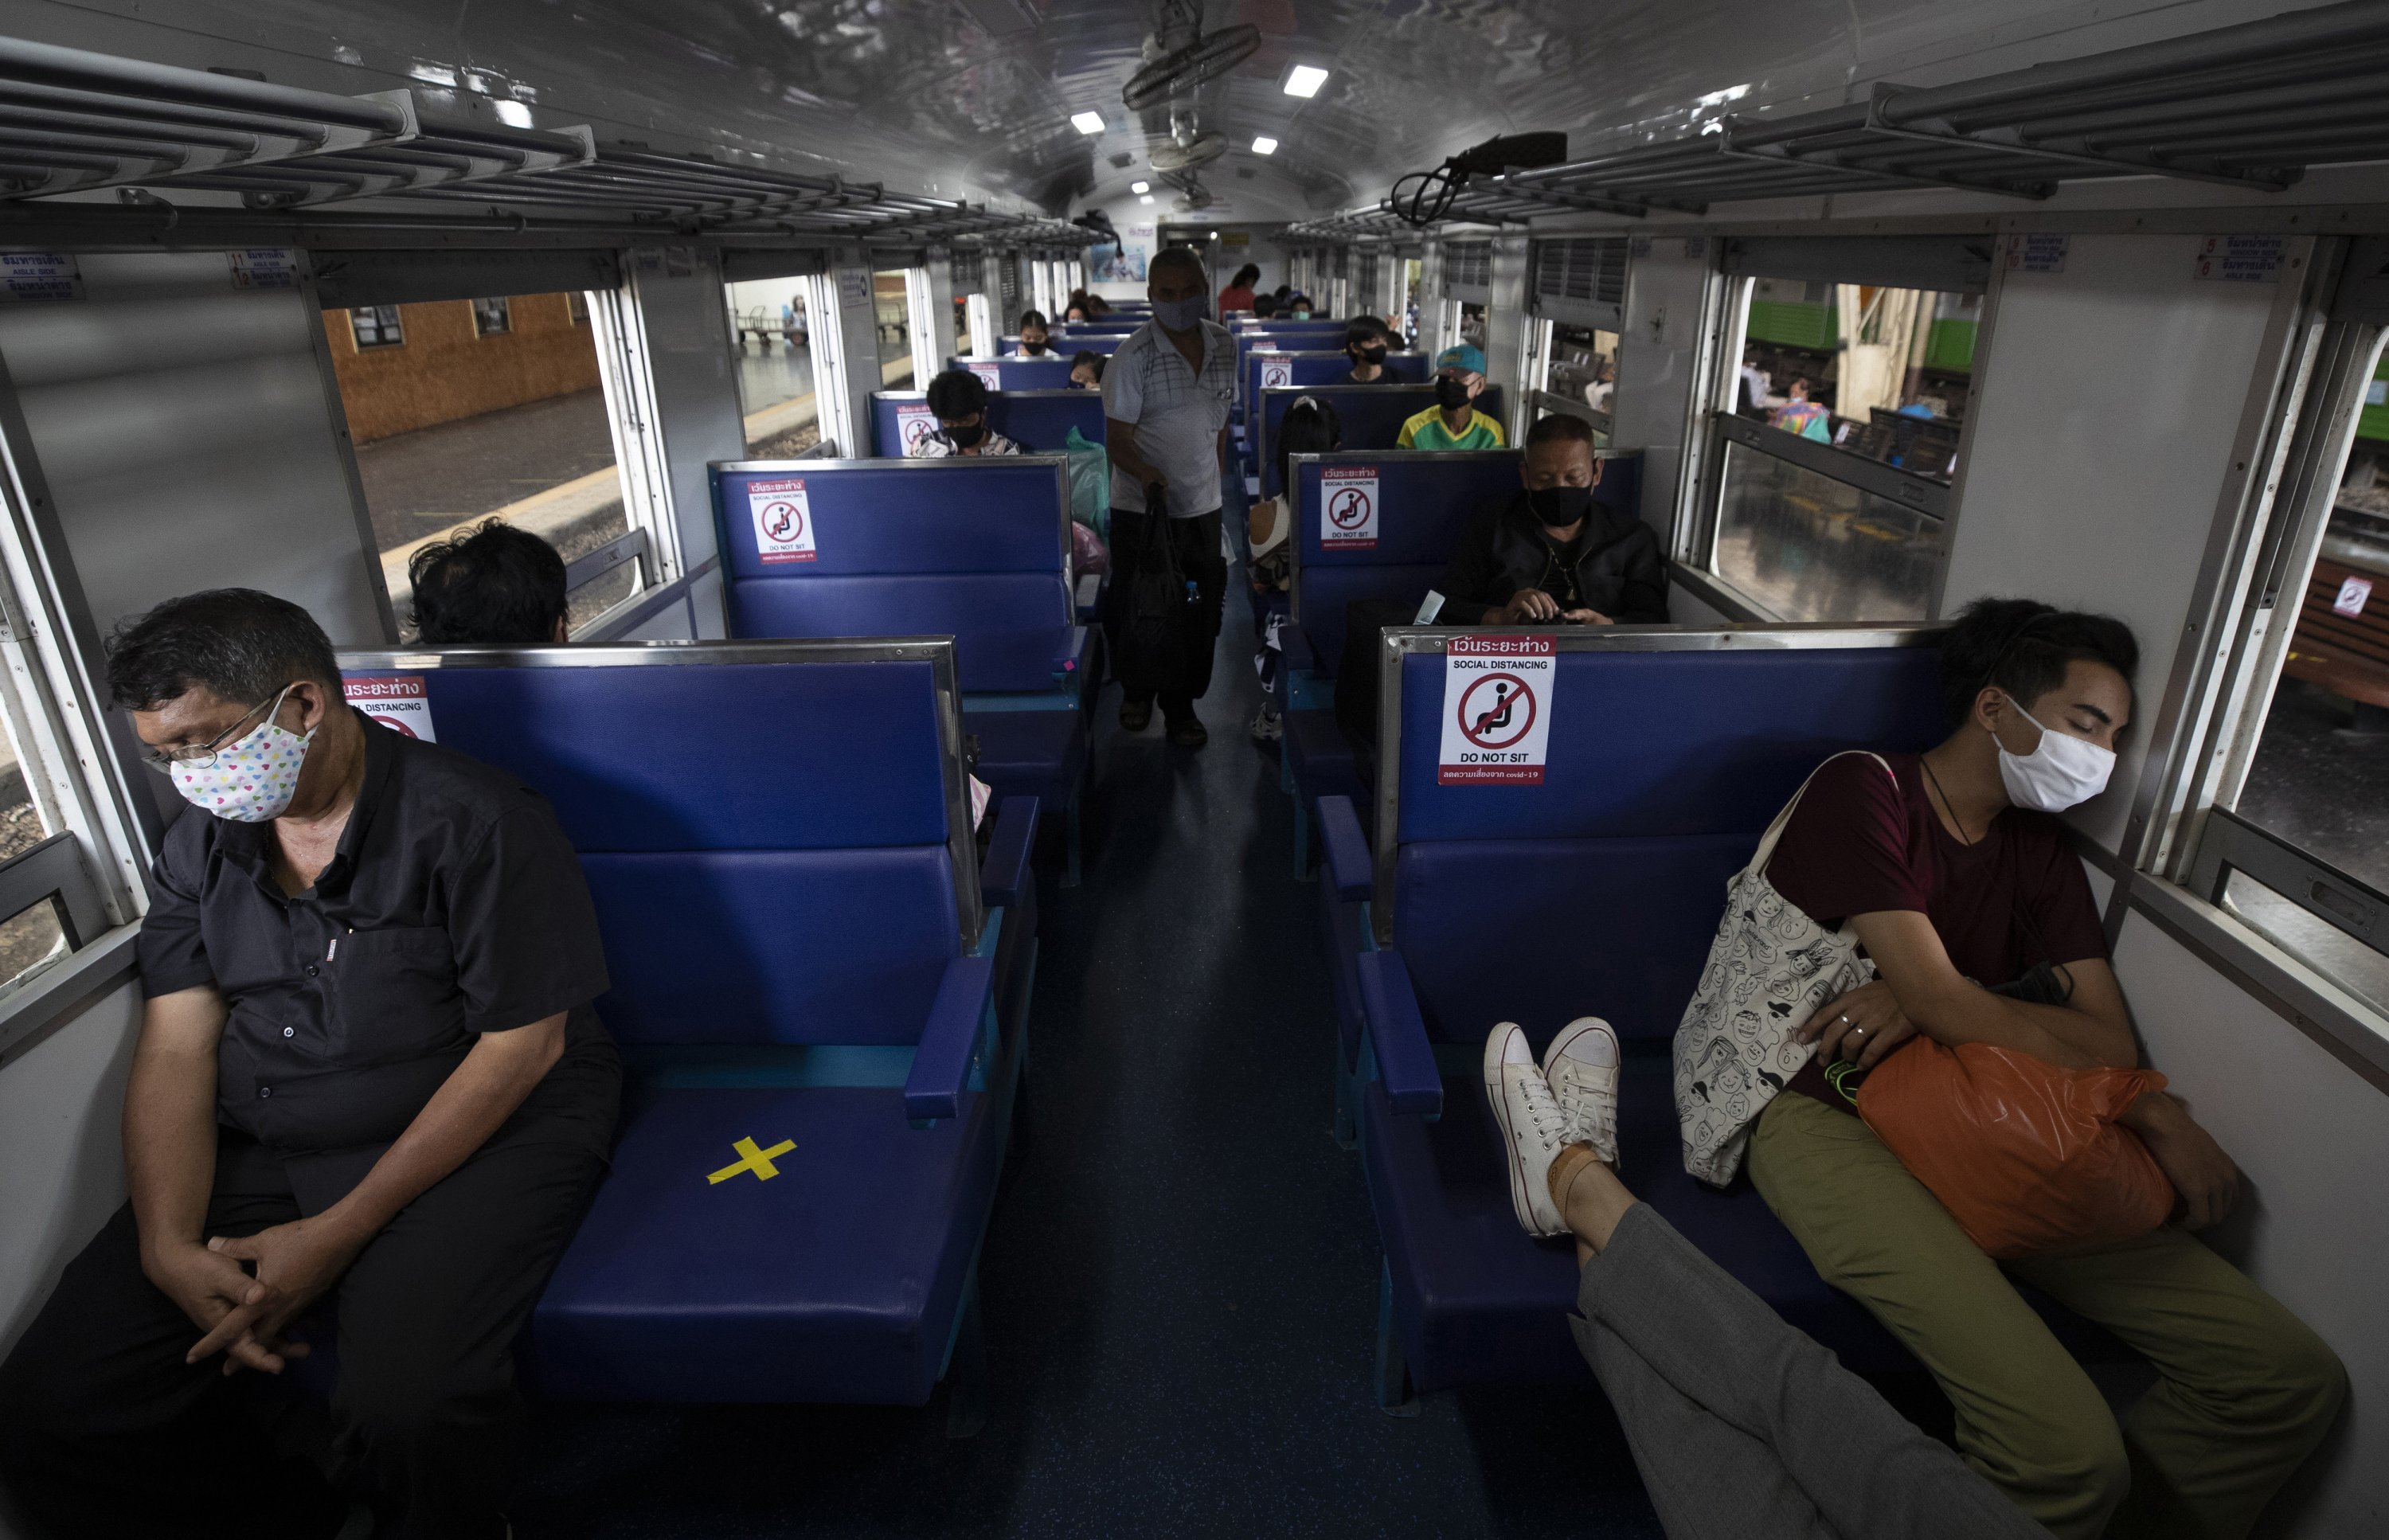 All aboard: Is it safe to take a train during the COVID-19 pandemic? |  Daily Sabah